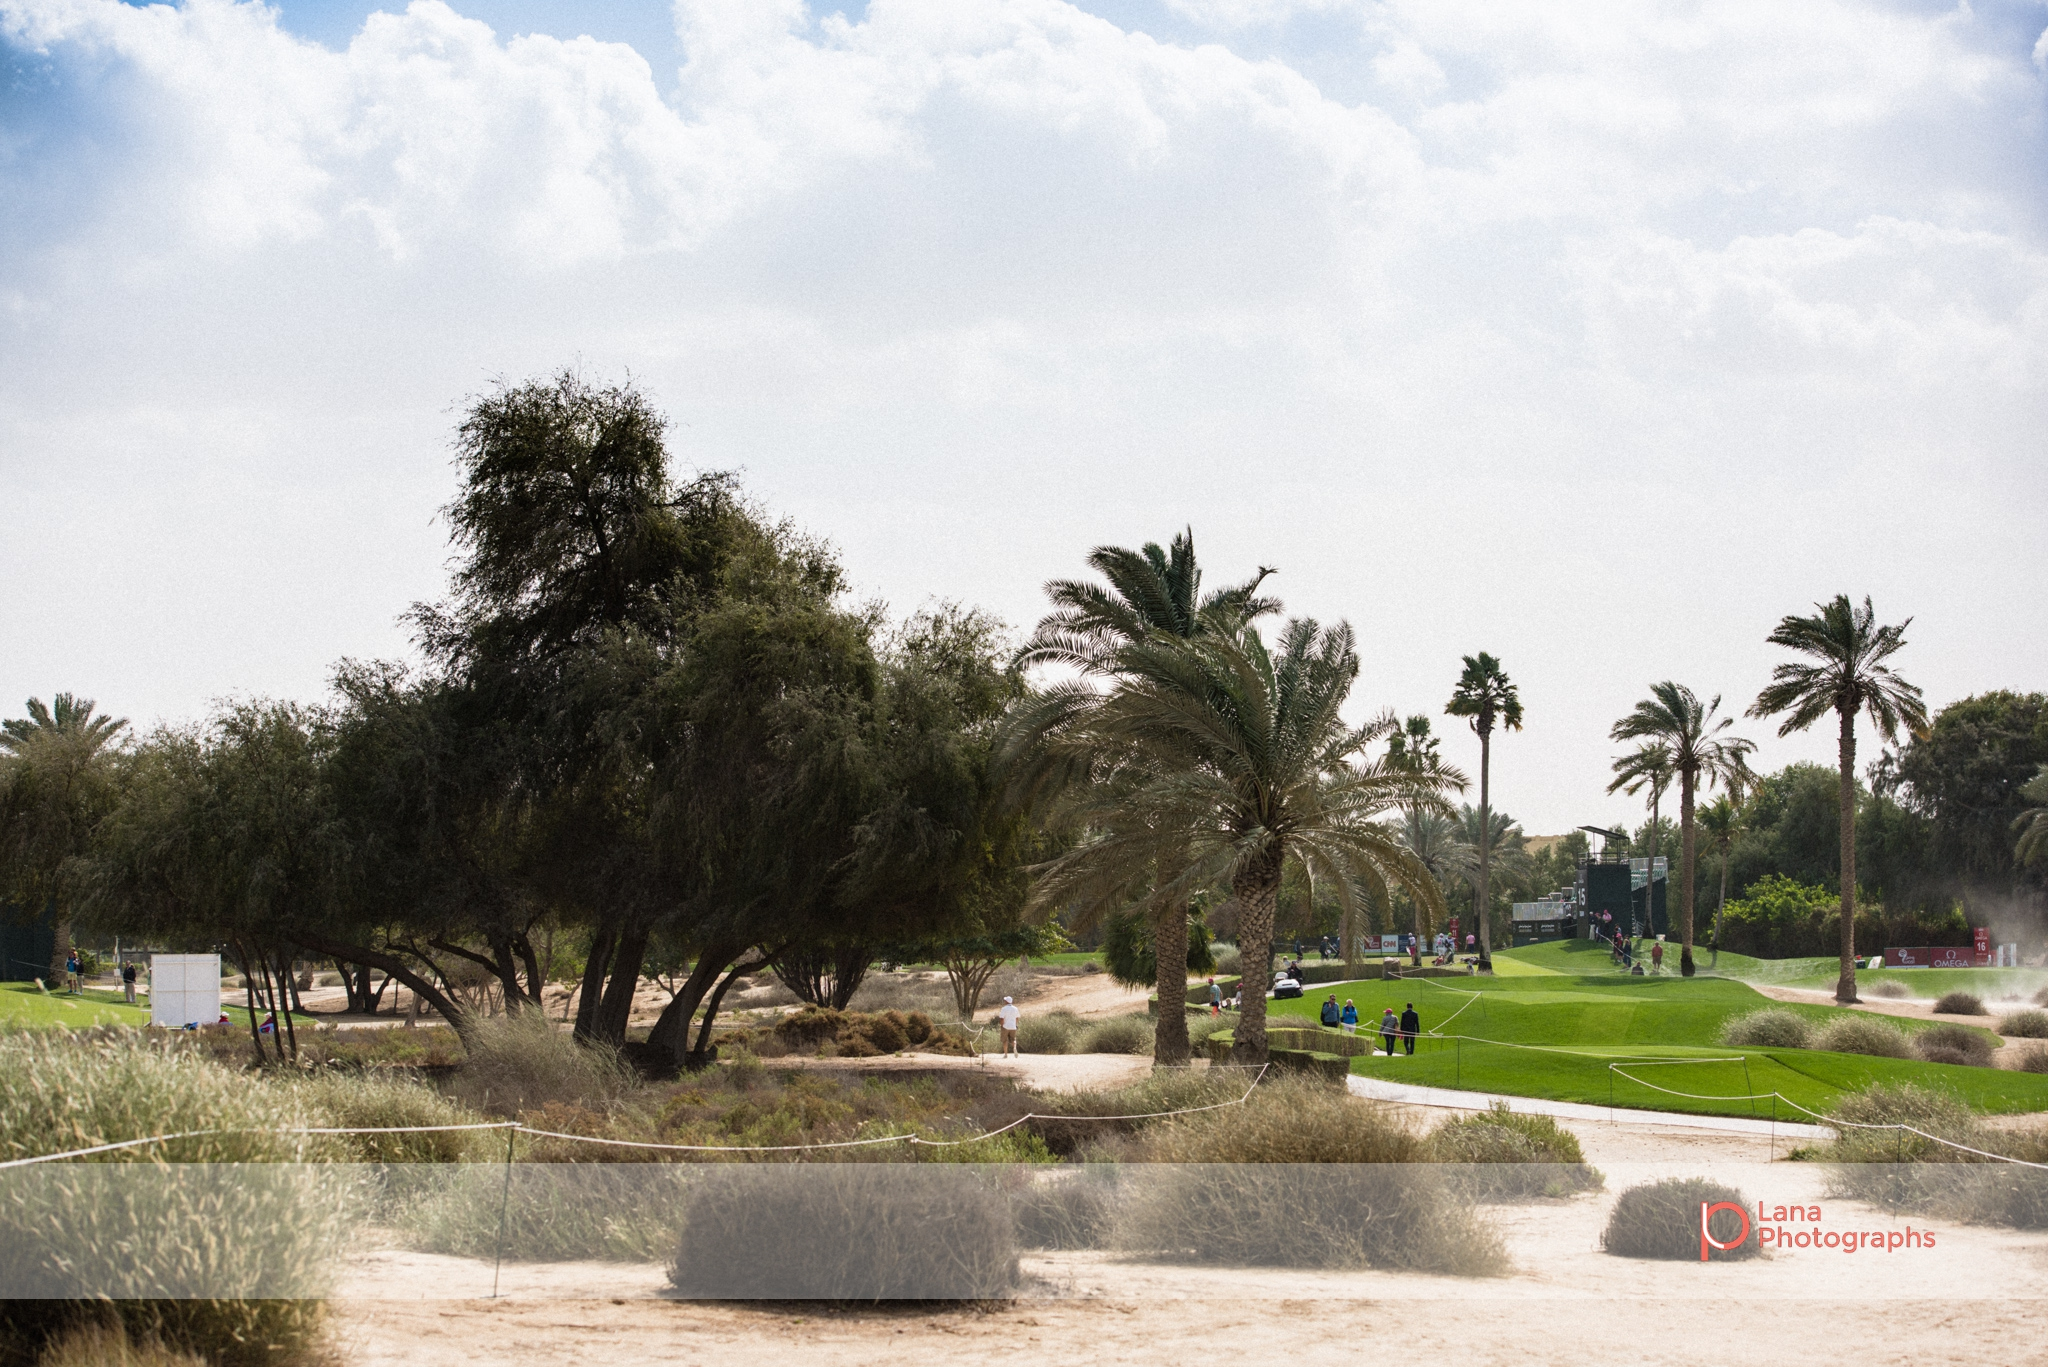 A view of the grounds at the Emirates Golf Course in Dubai during February 2017